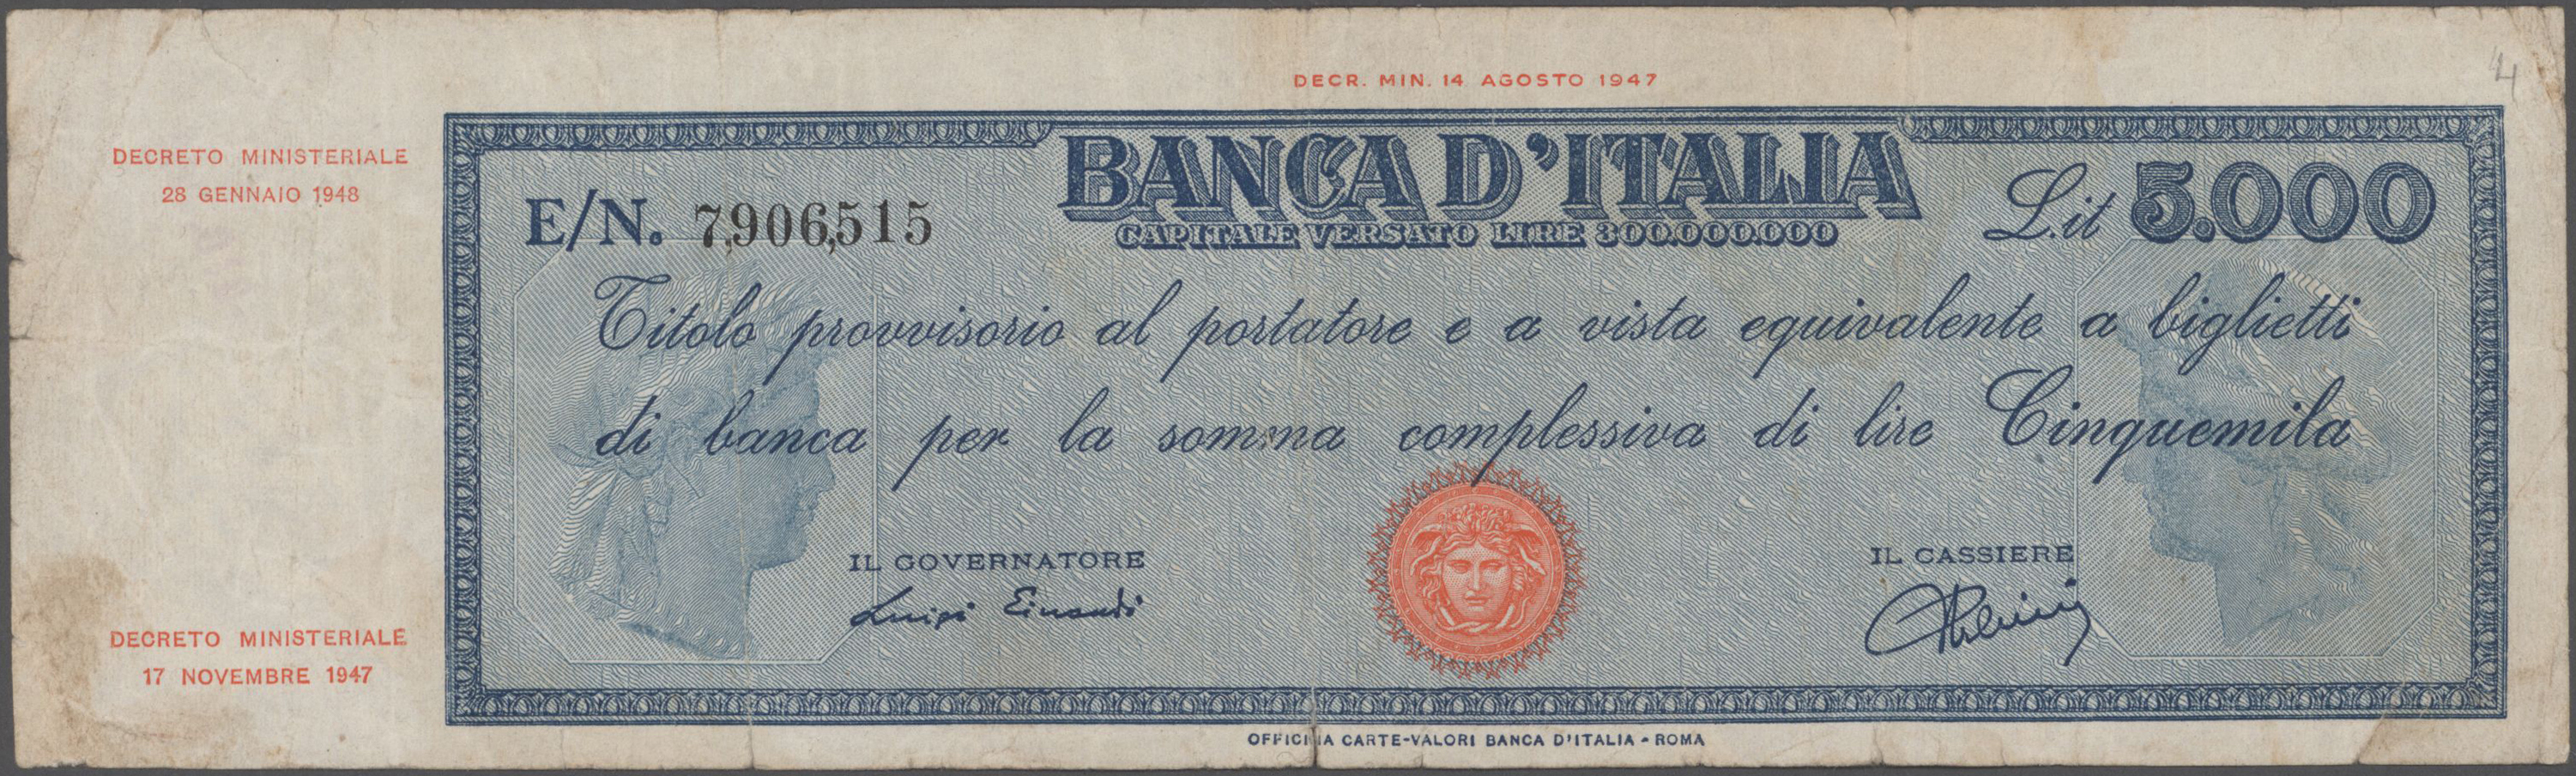 Lot 00457 - Italy / Italien | Banknoten  -  Auktionshaus Christoph Gärtner GmbH & Co. KG Sale #48 The Banknotes